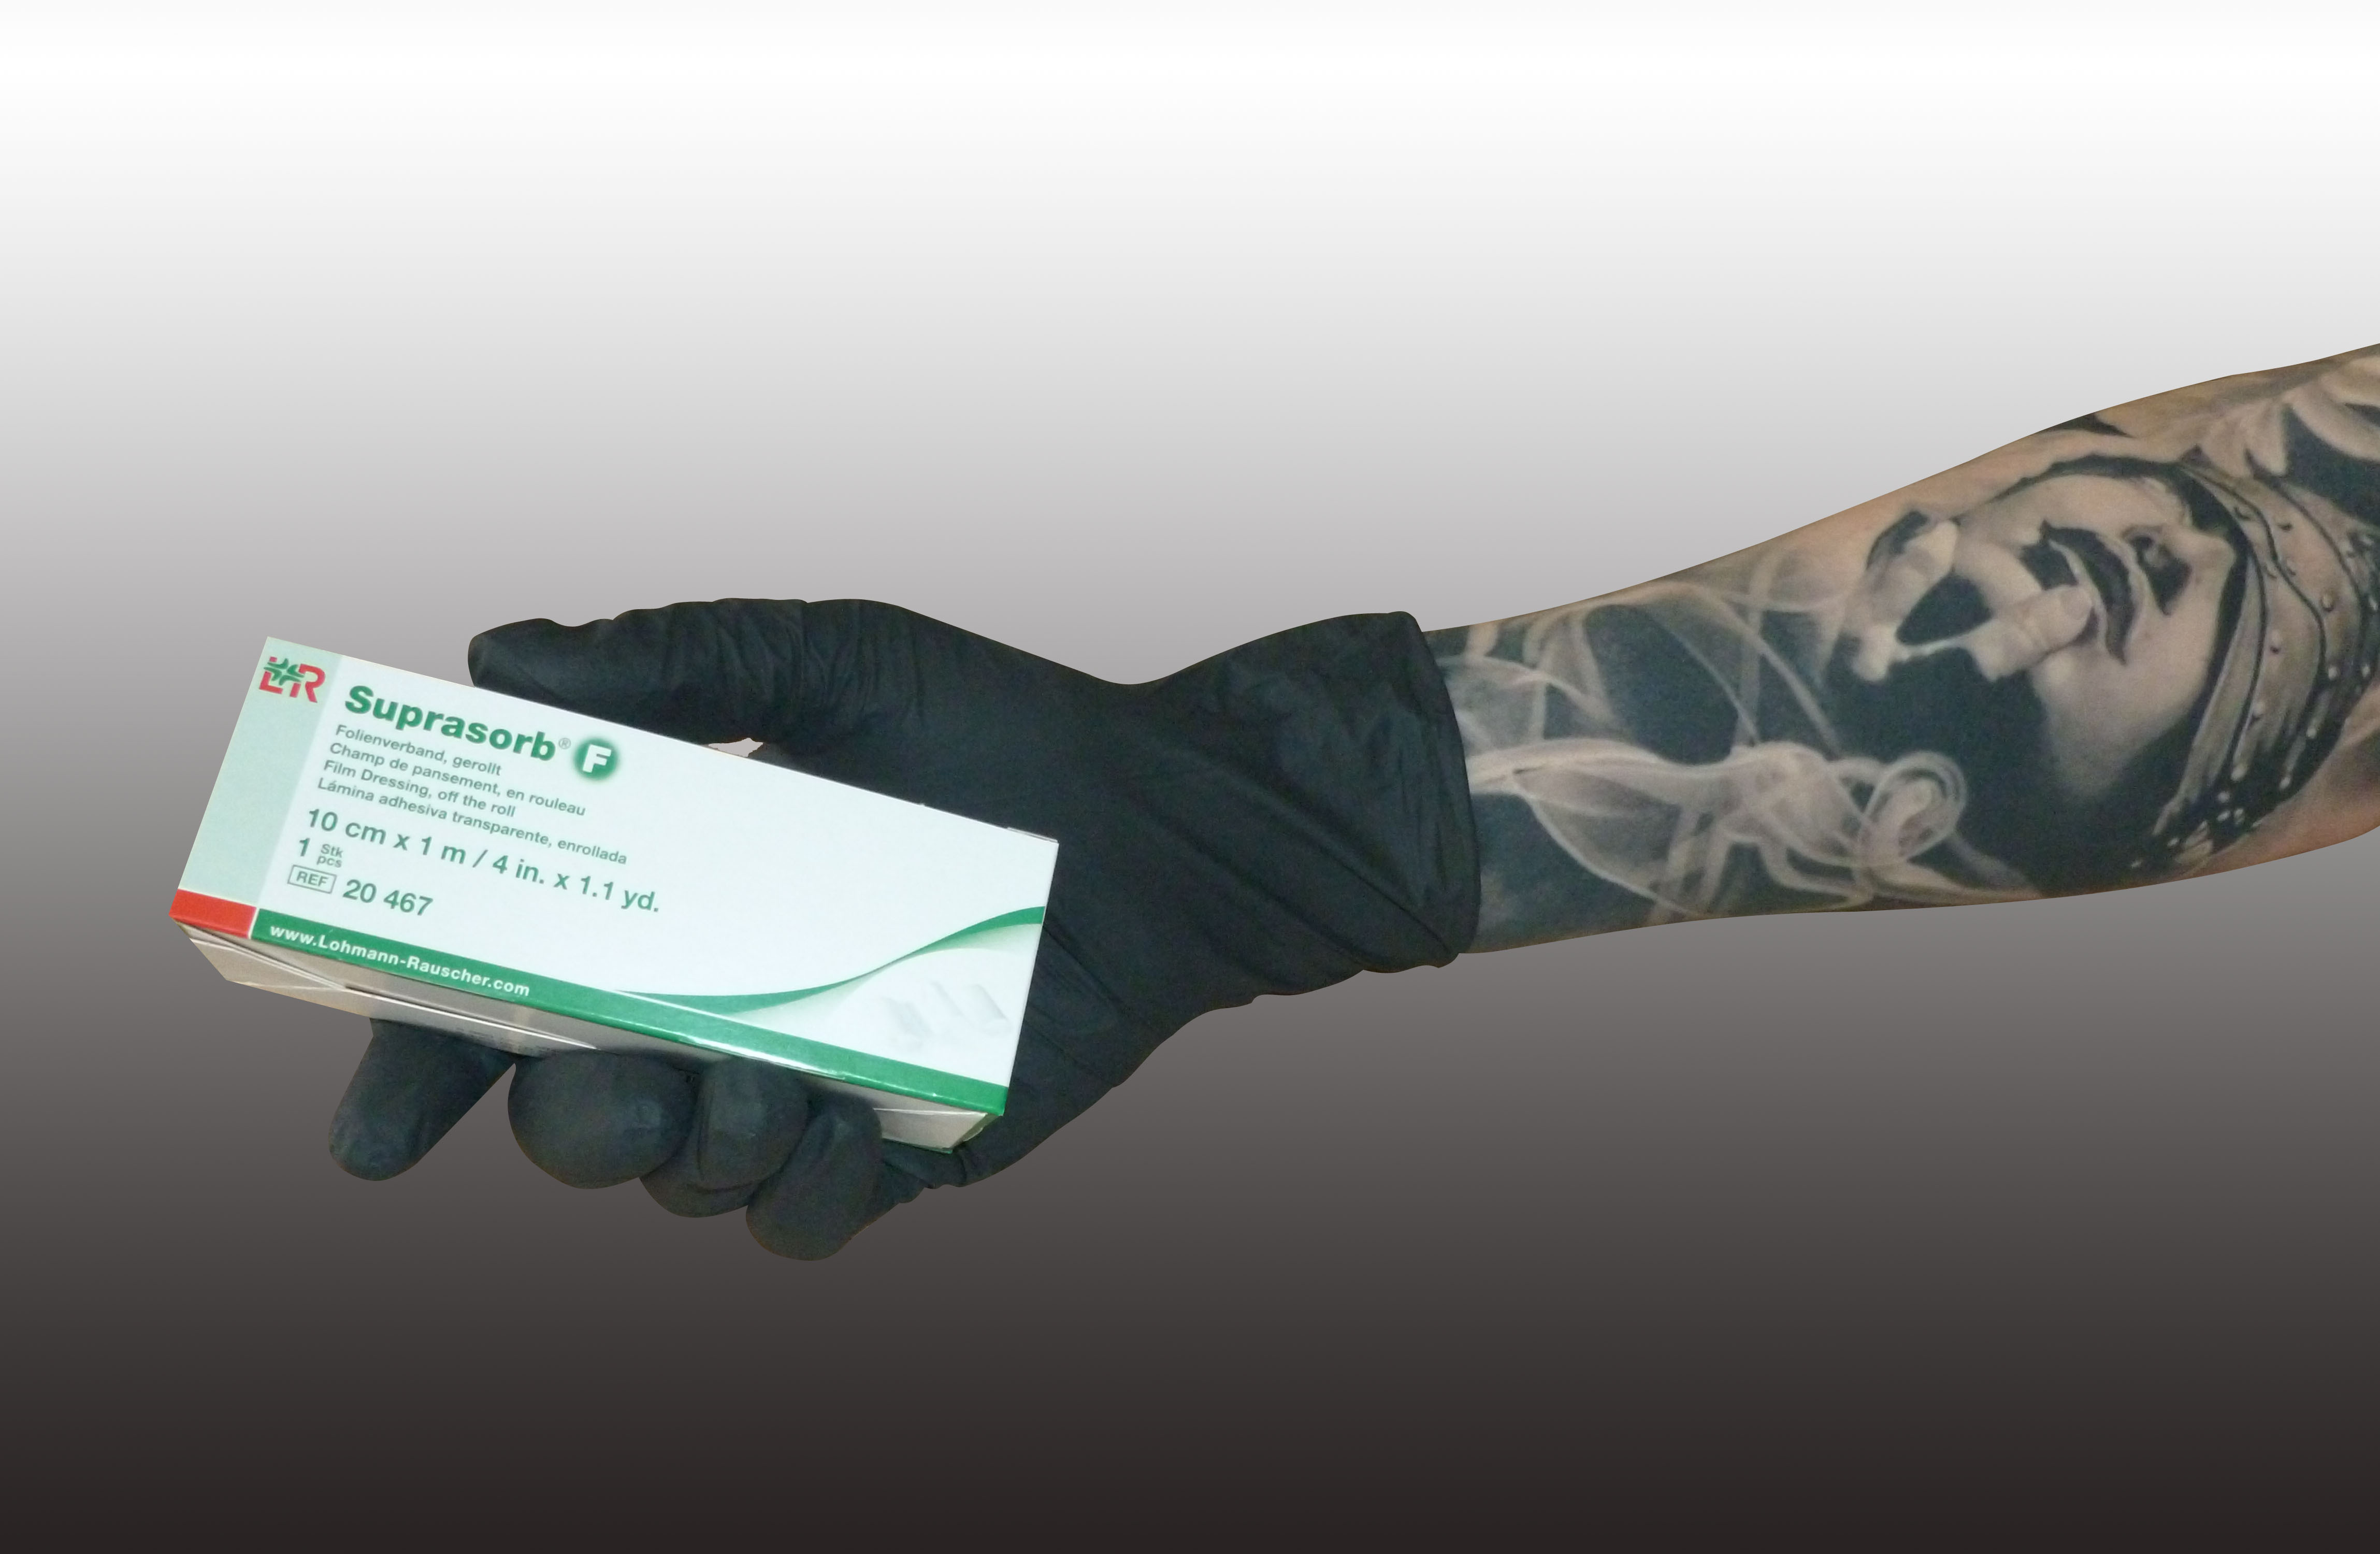 Suprasorb f 24 95 verbandsmaterialien tattoo verband for Tattoo shops 24 hours